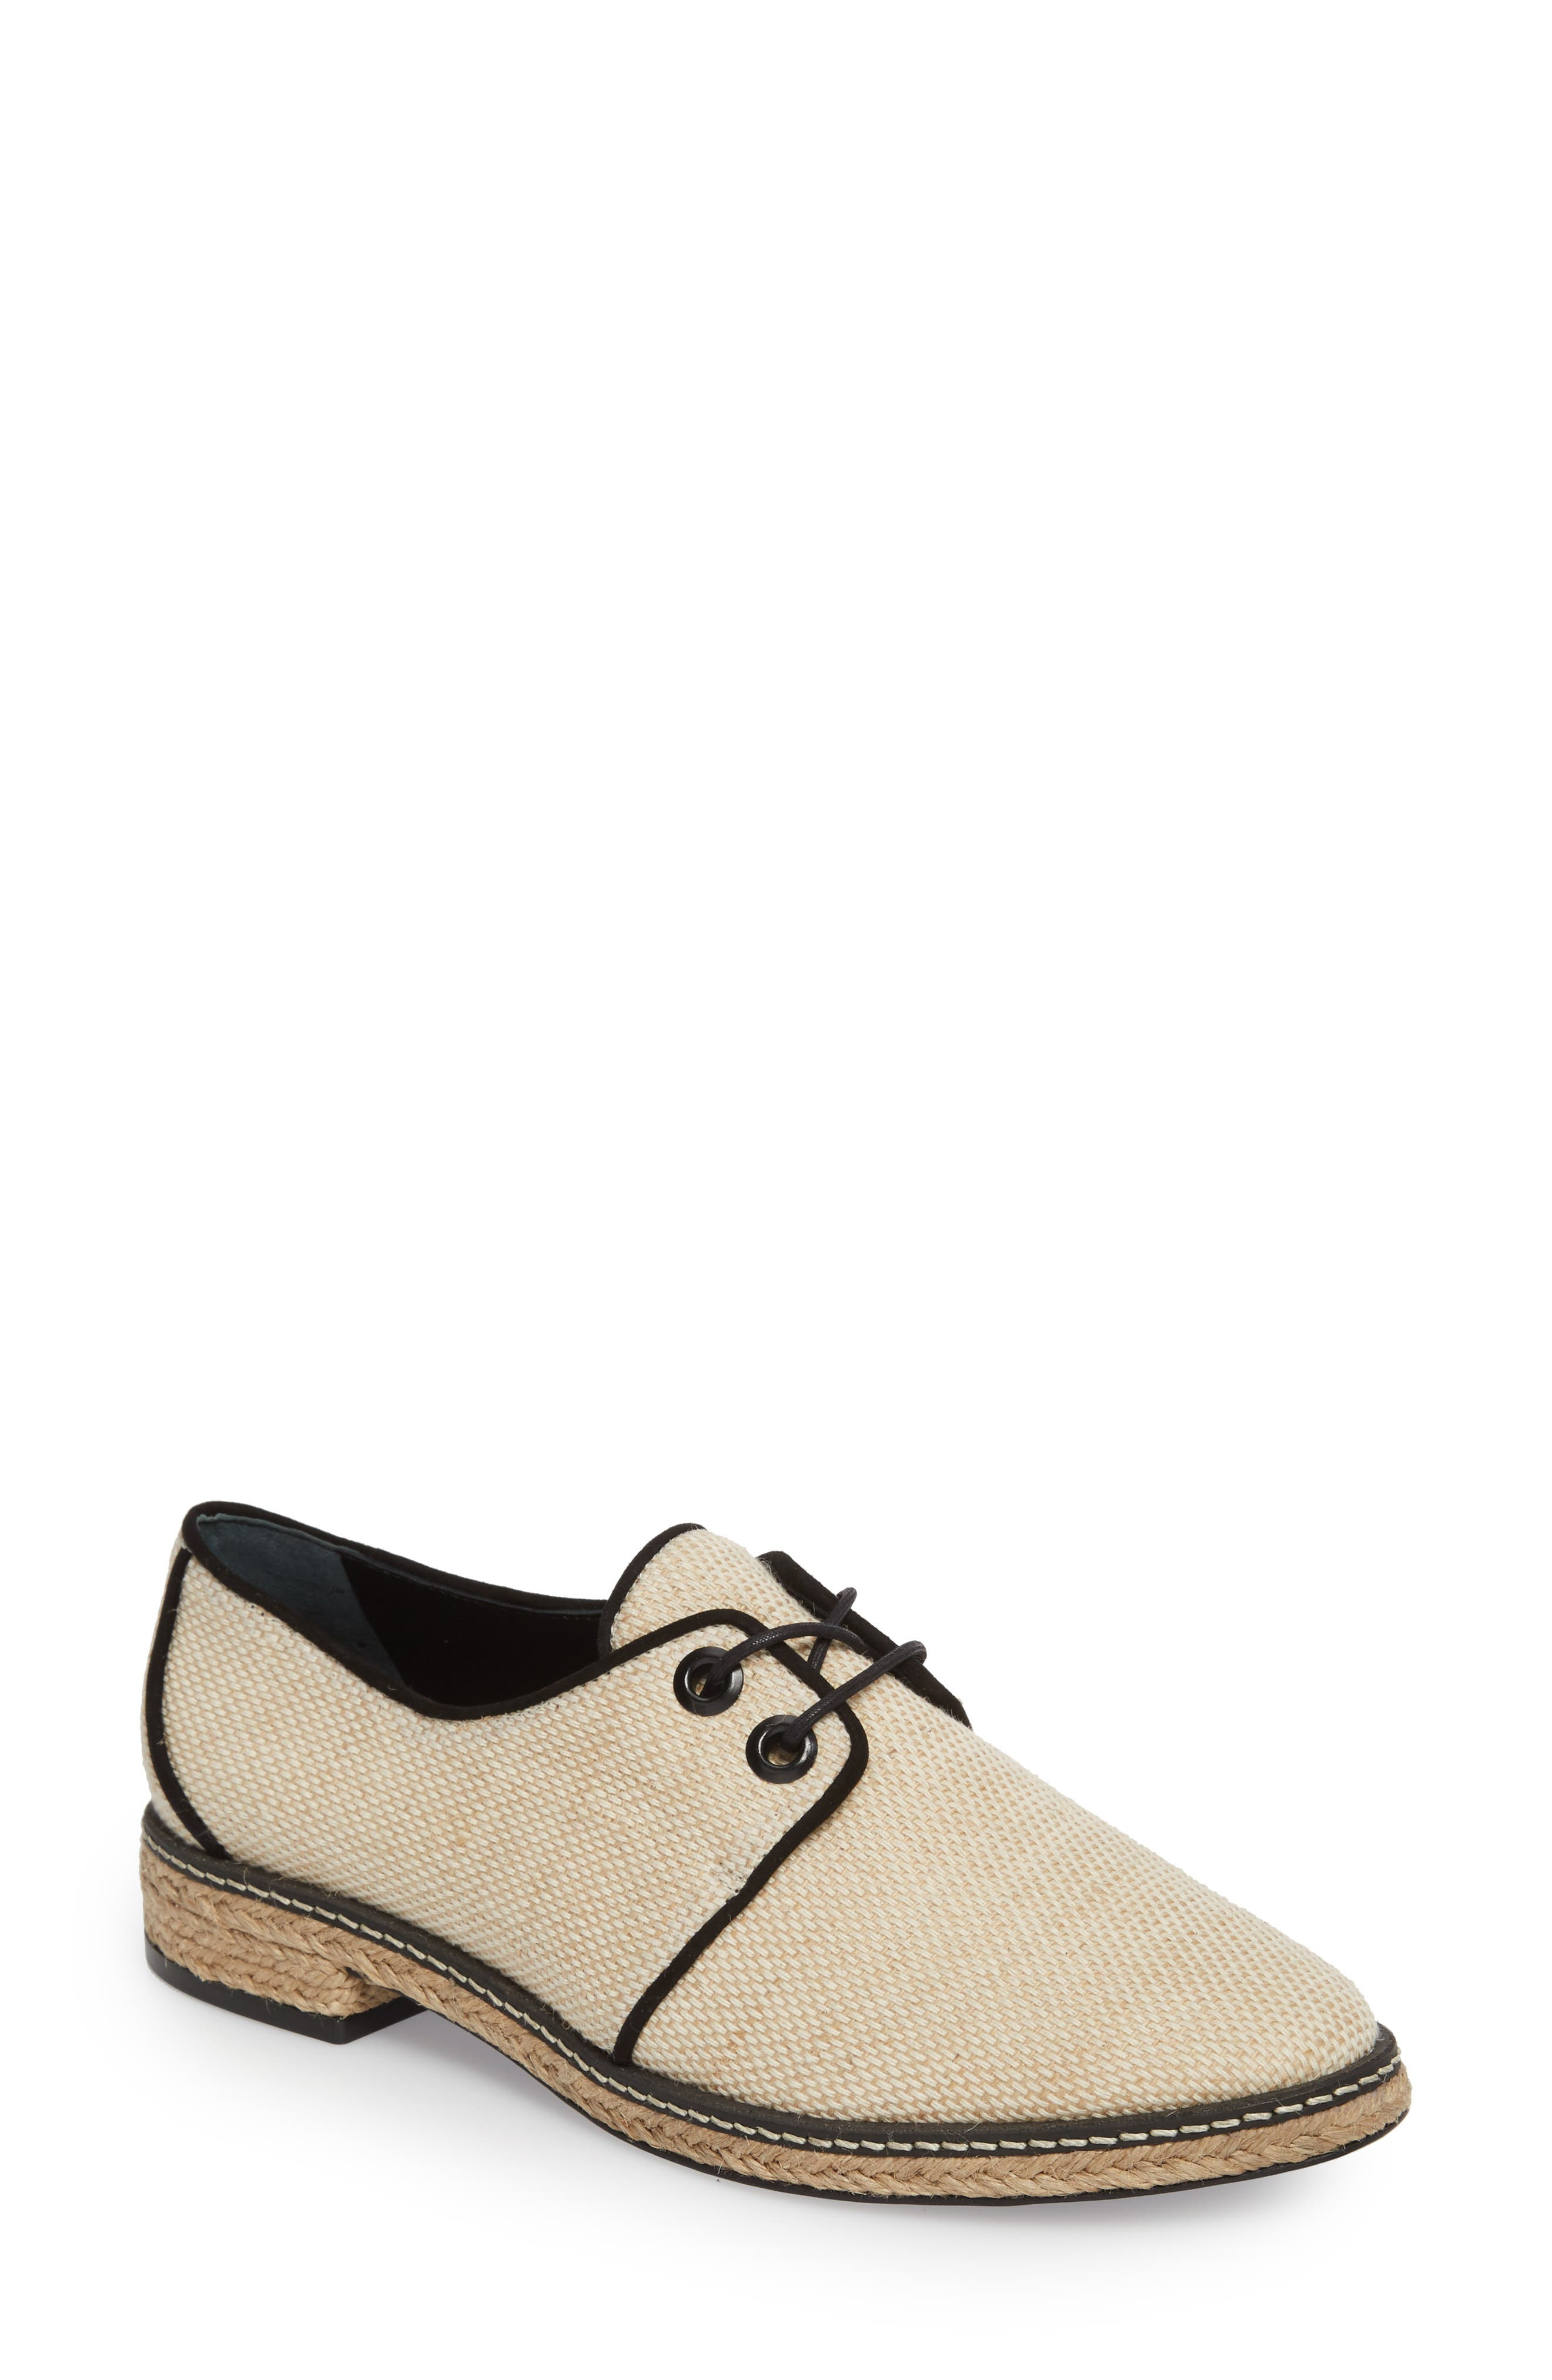 Alternate Image 1 Selected - Tory Burch Fawn Espadrille Oxford (Women)